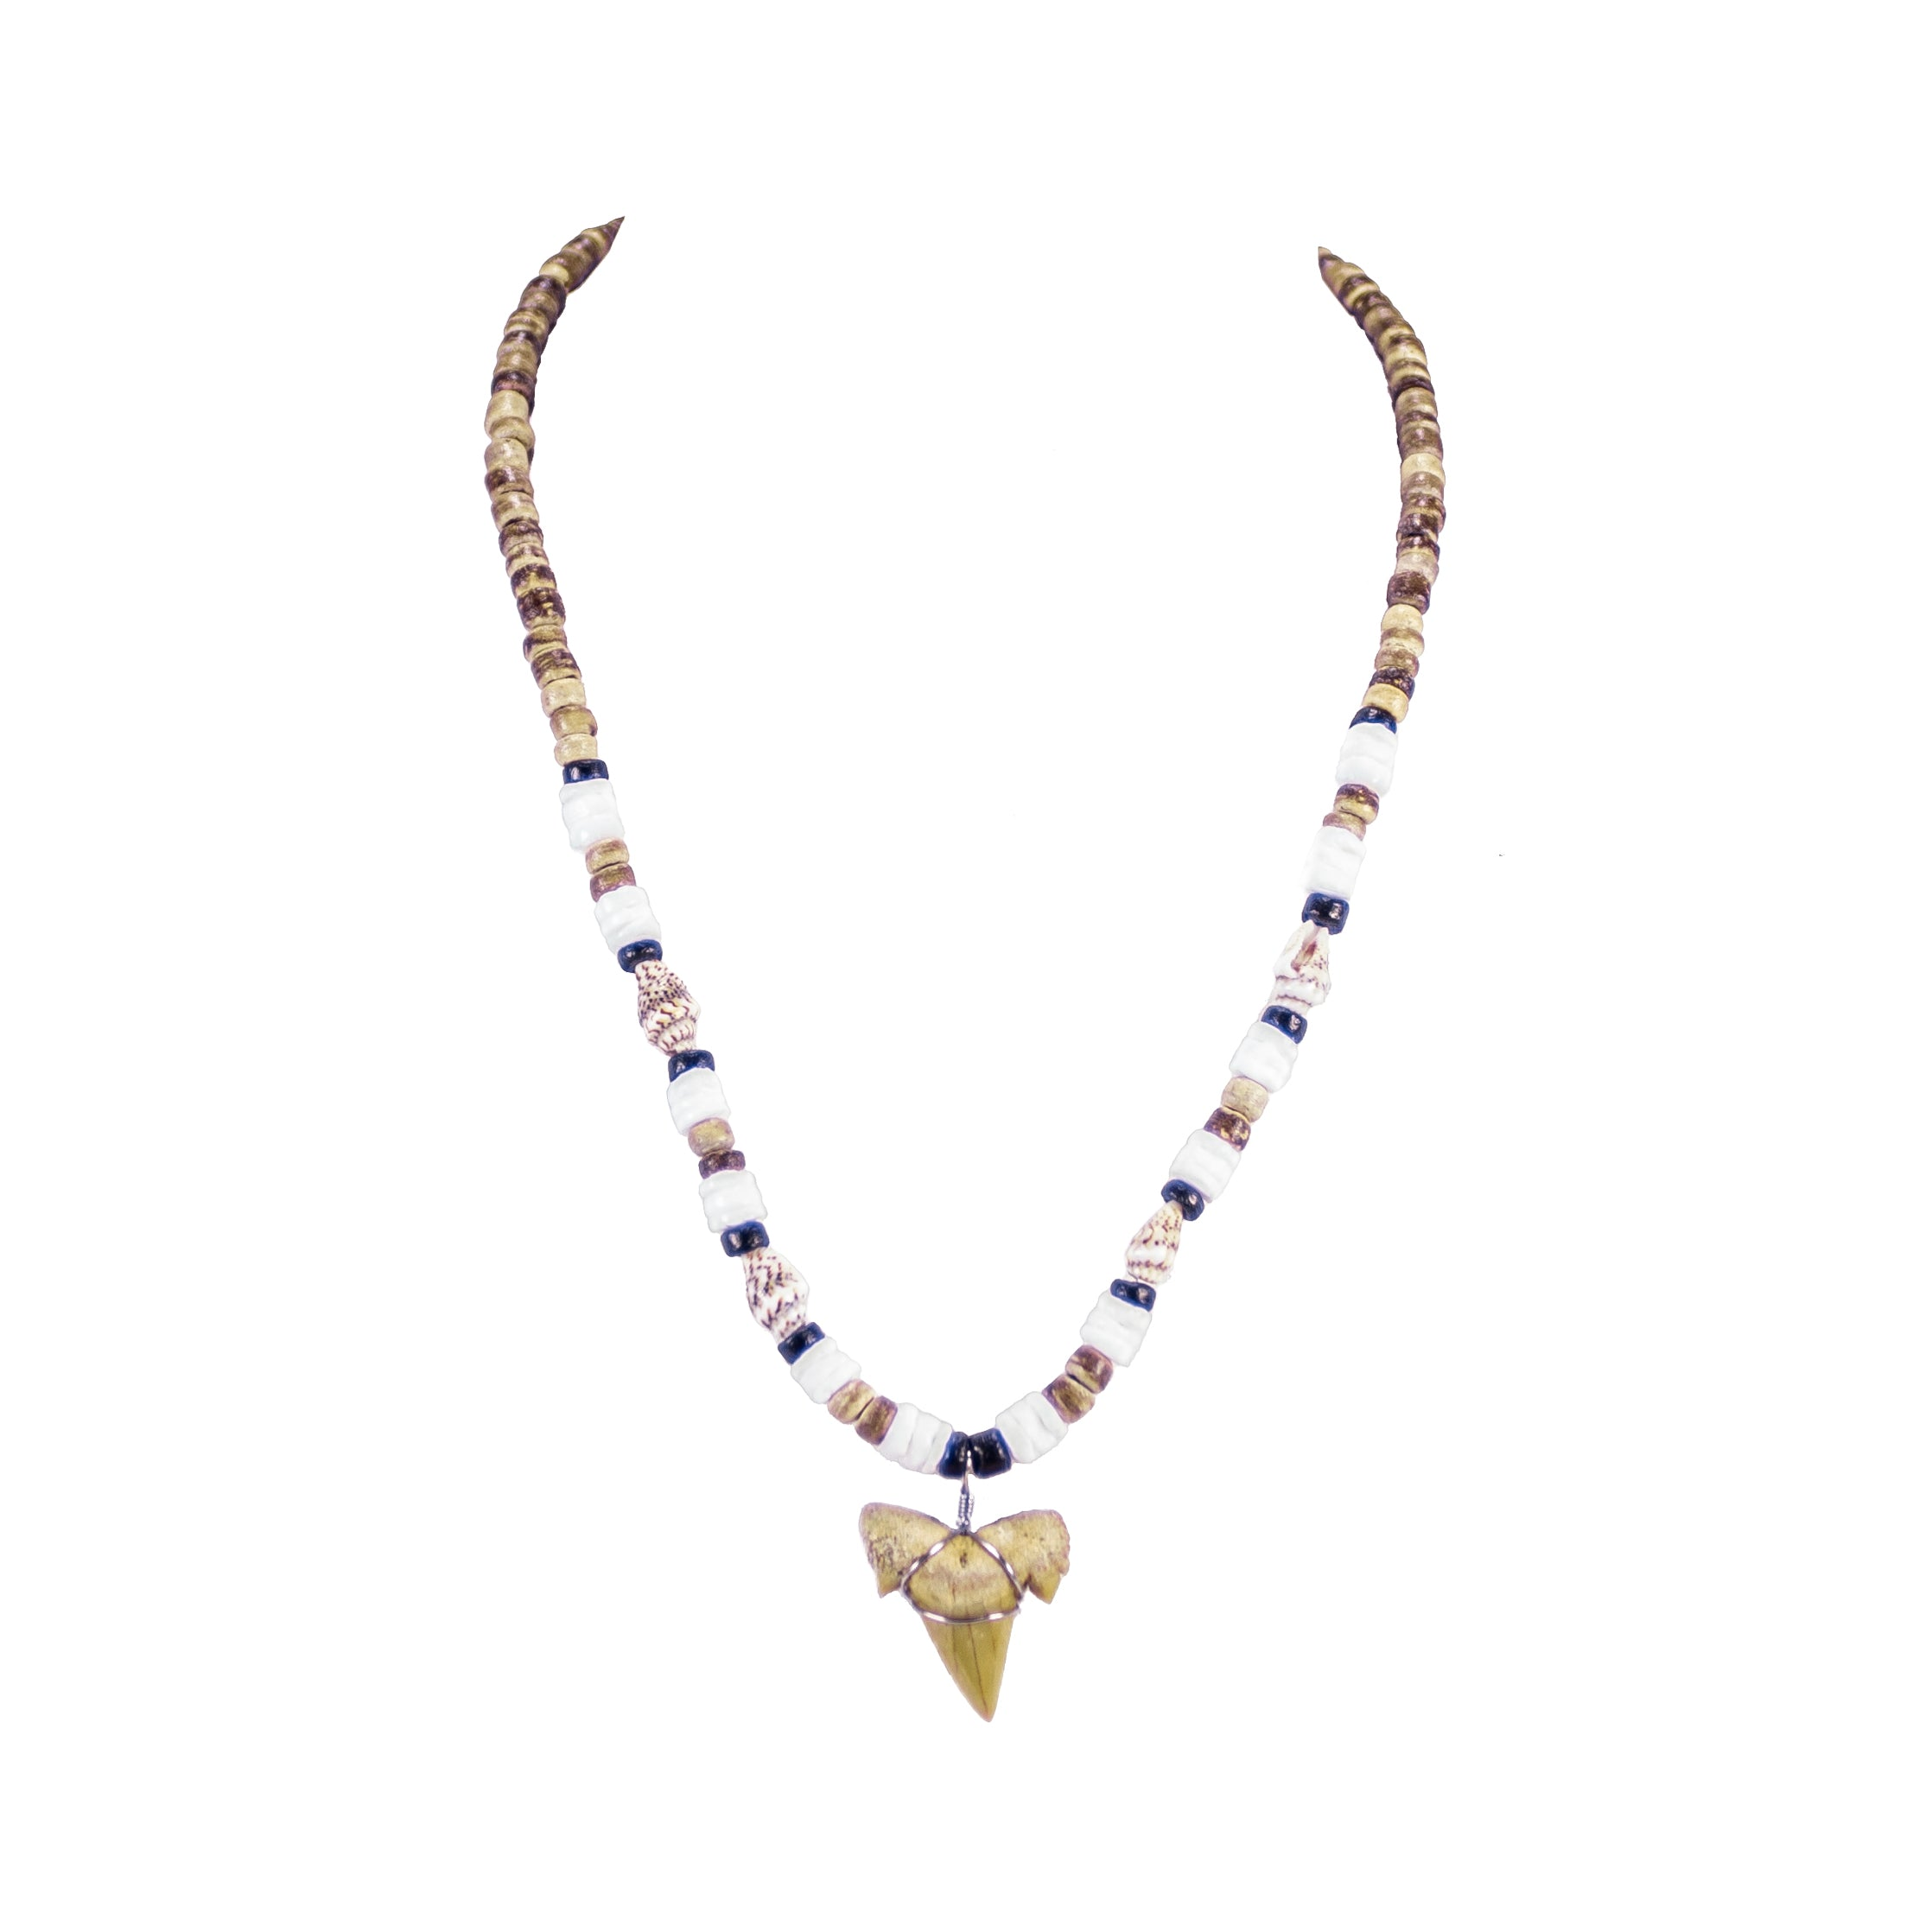 "1""+ Shark Tooth Pendant on Tiger Coconut and Puka Shell Beads Necklace"